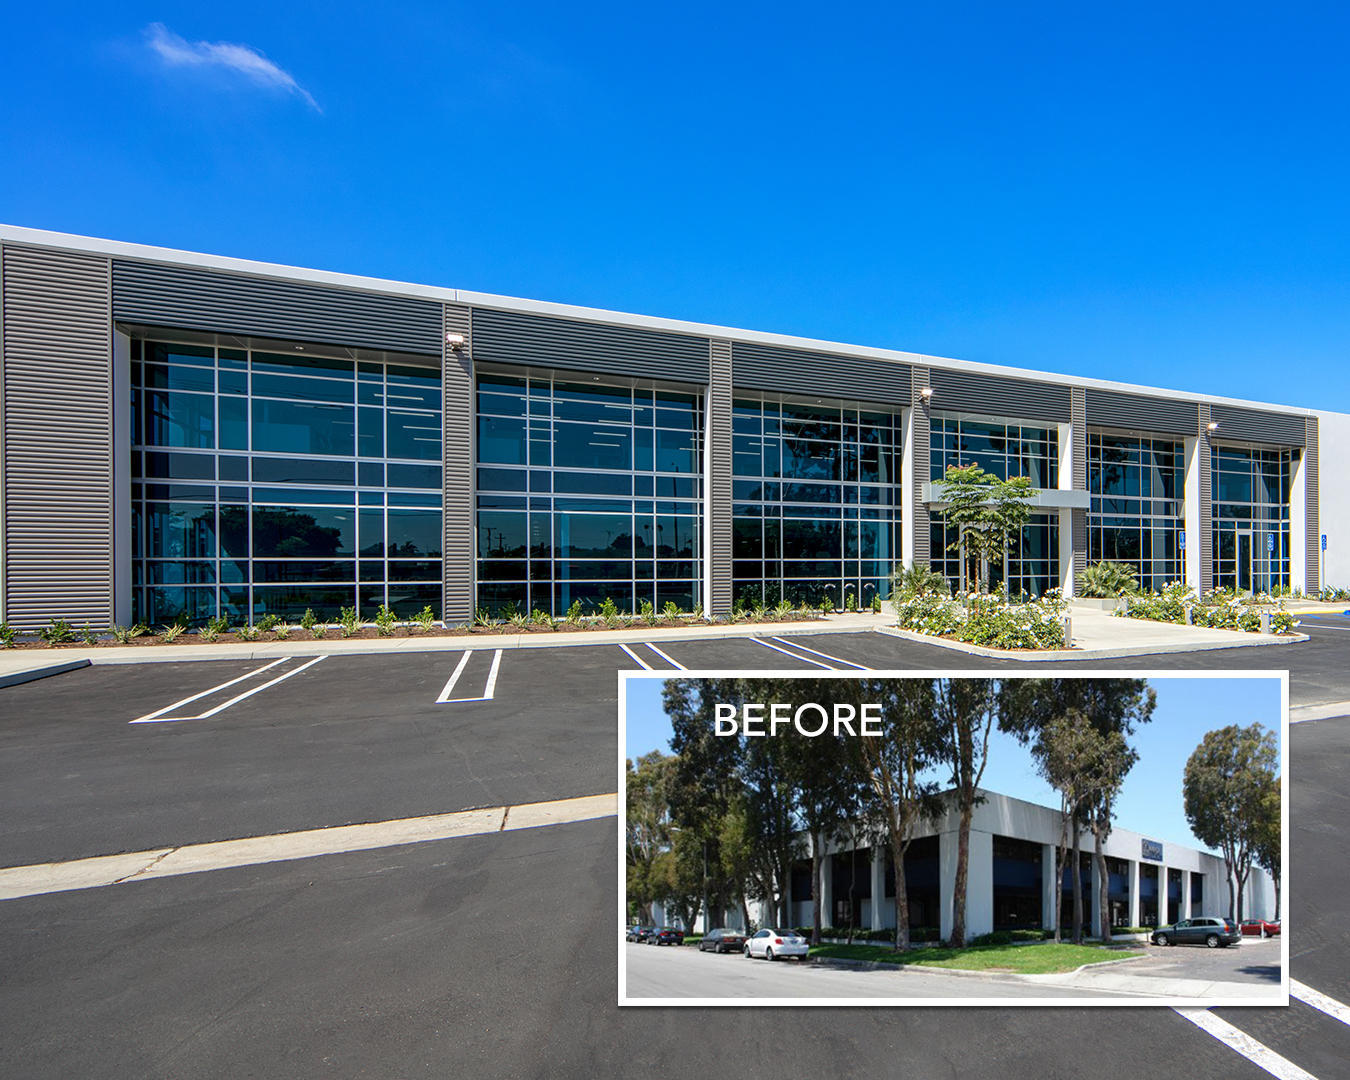 SRG Commercial Property Services Transforms 1970's Building in Huntington Beach, CA